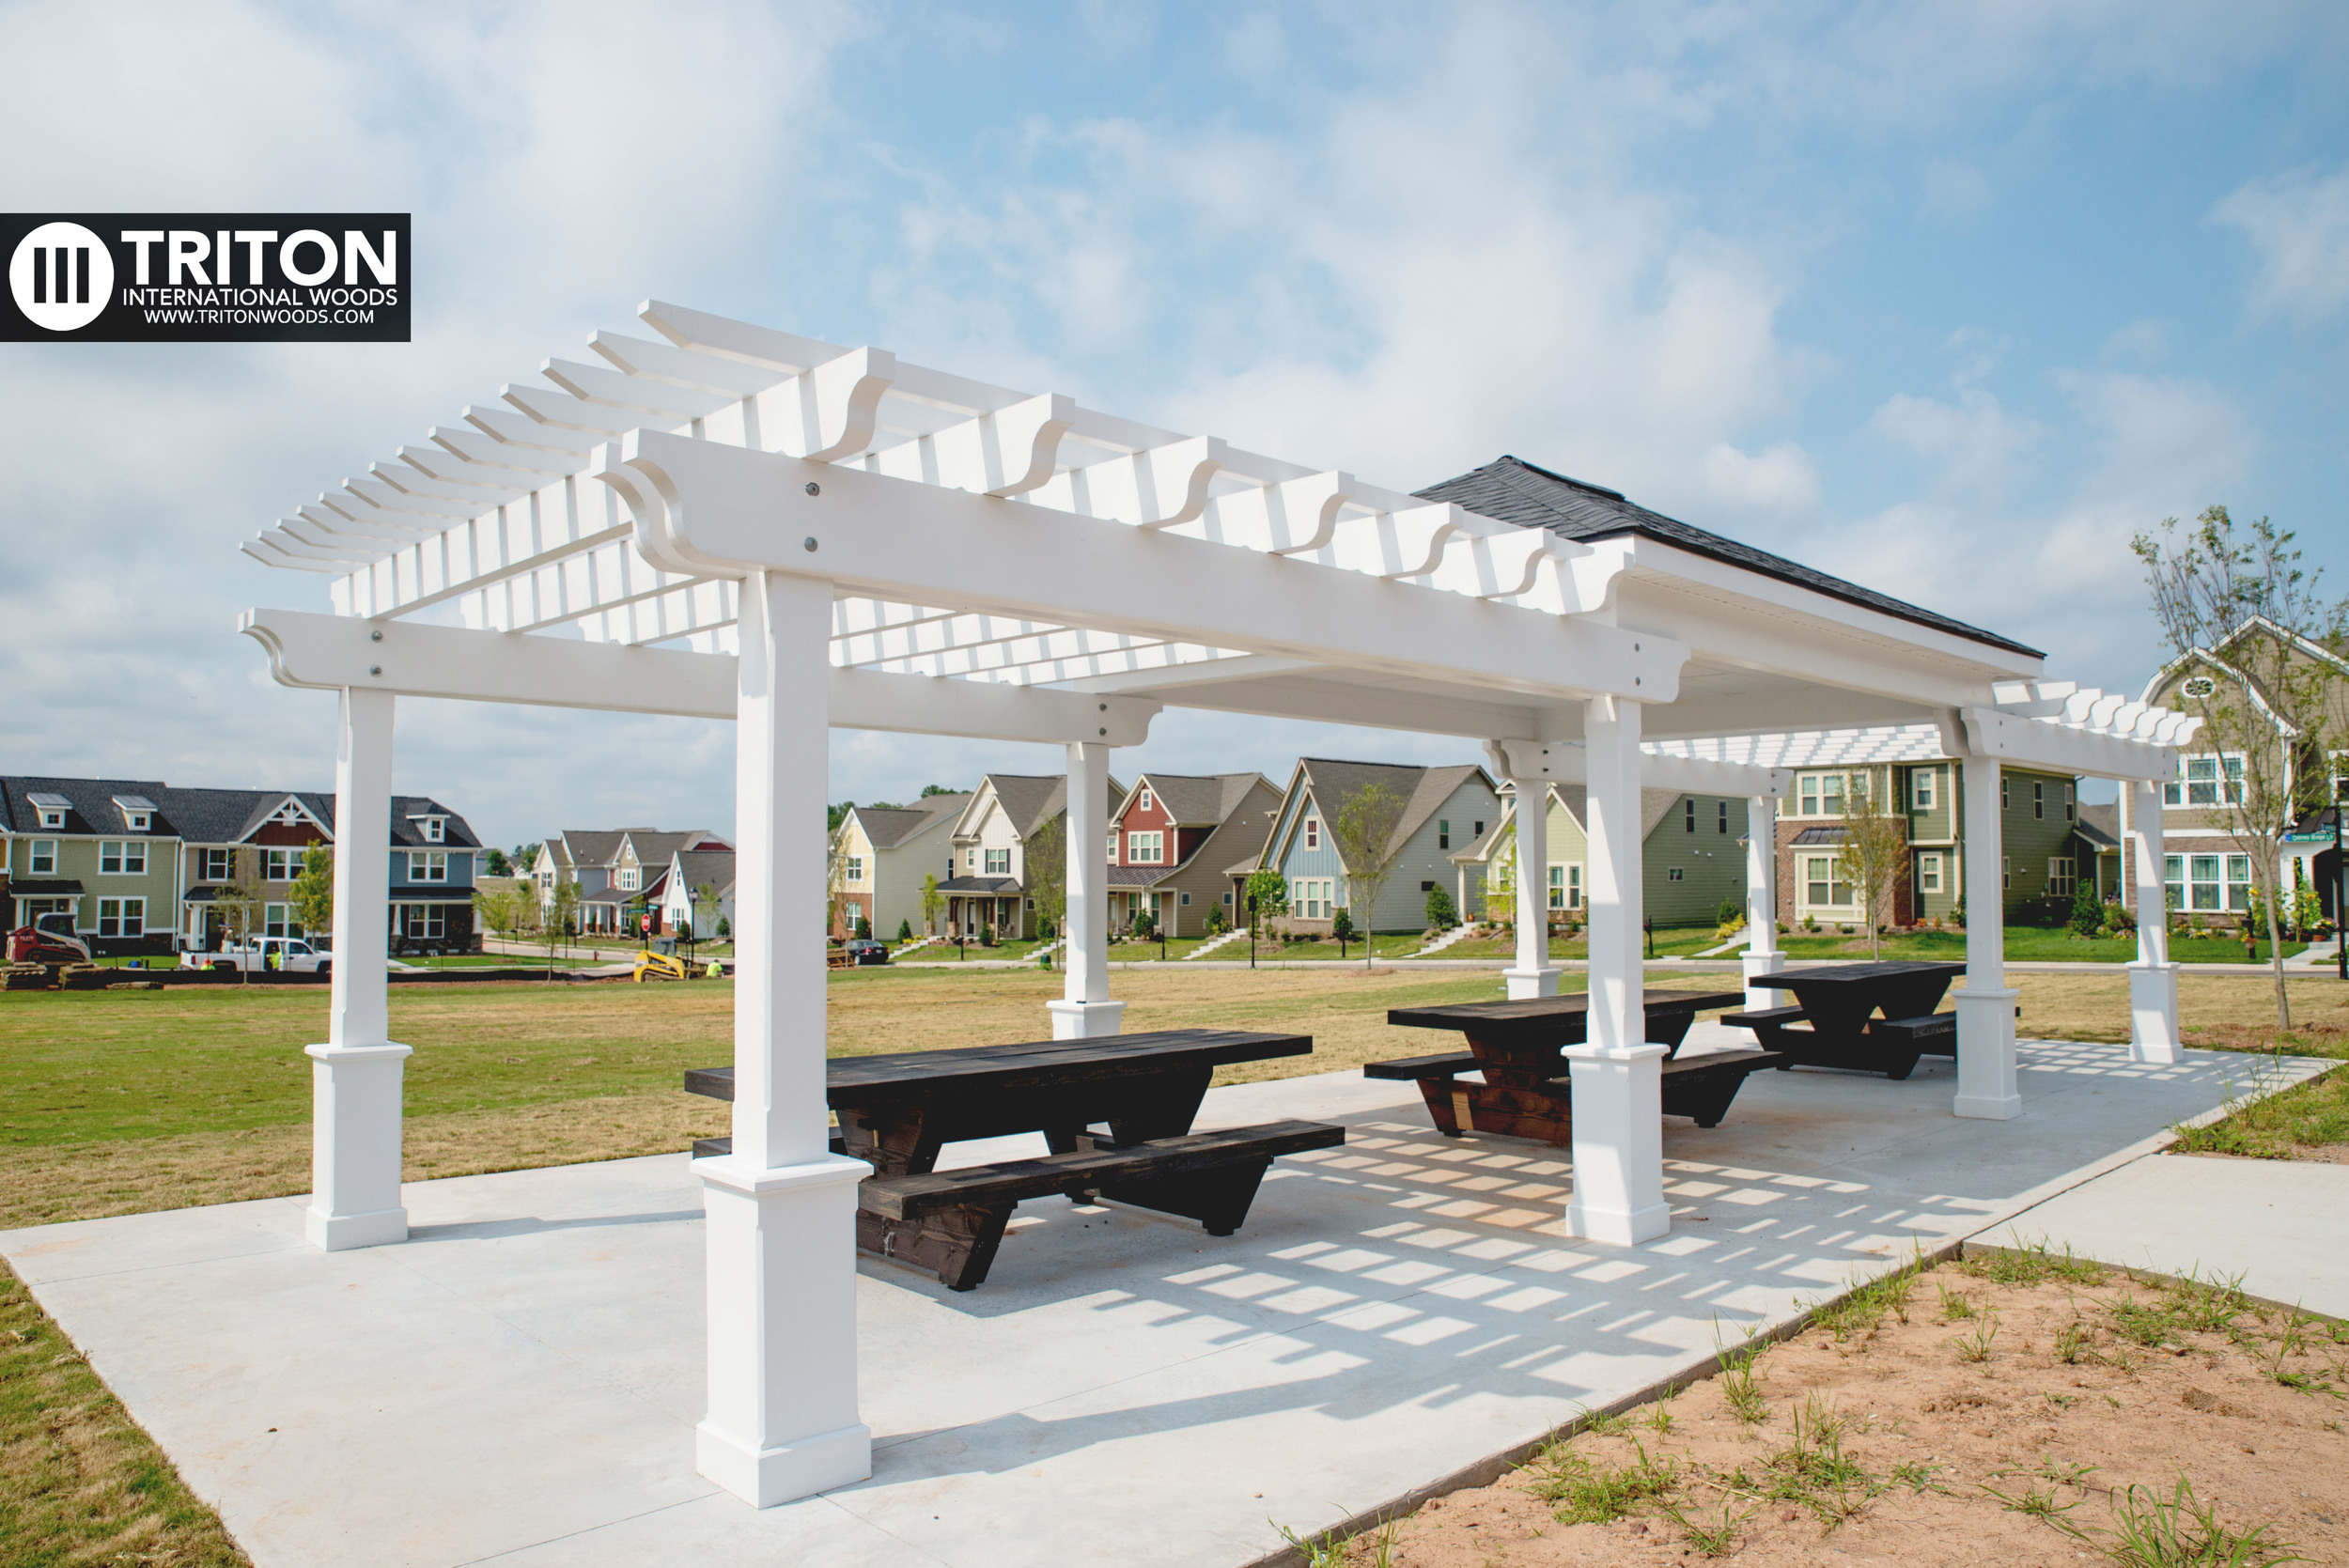 Picnic shelter designed and built by Triton